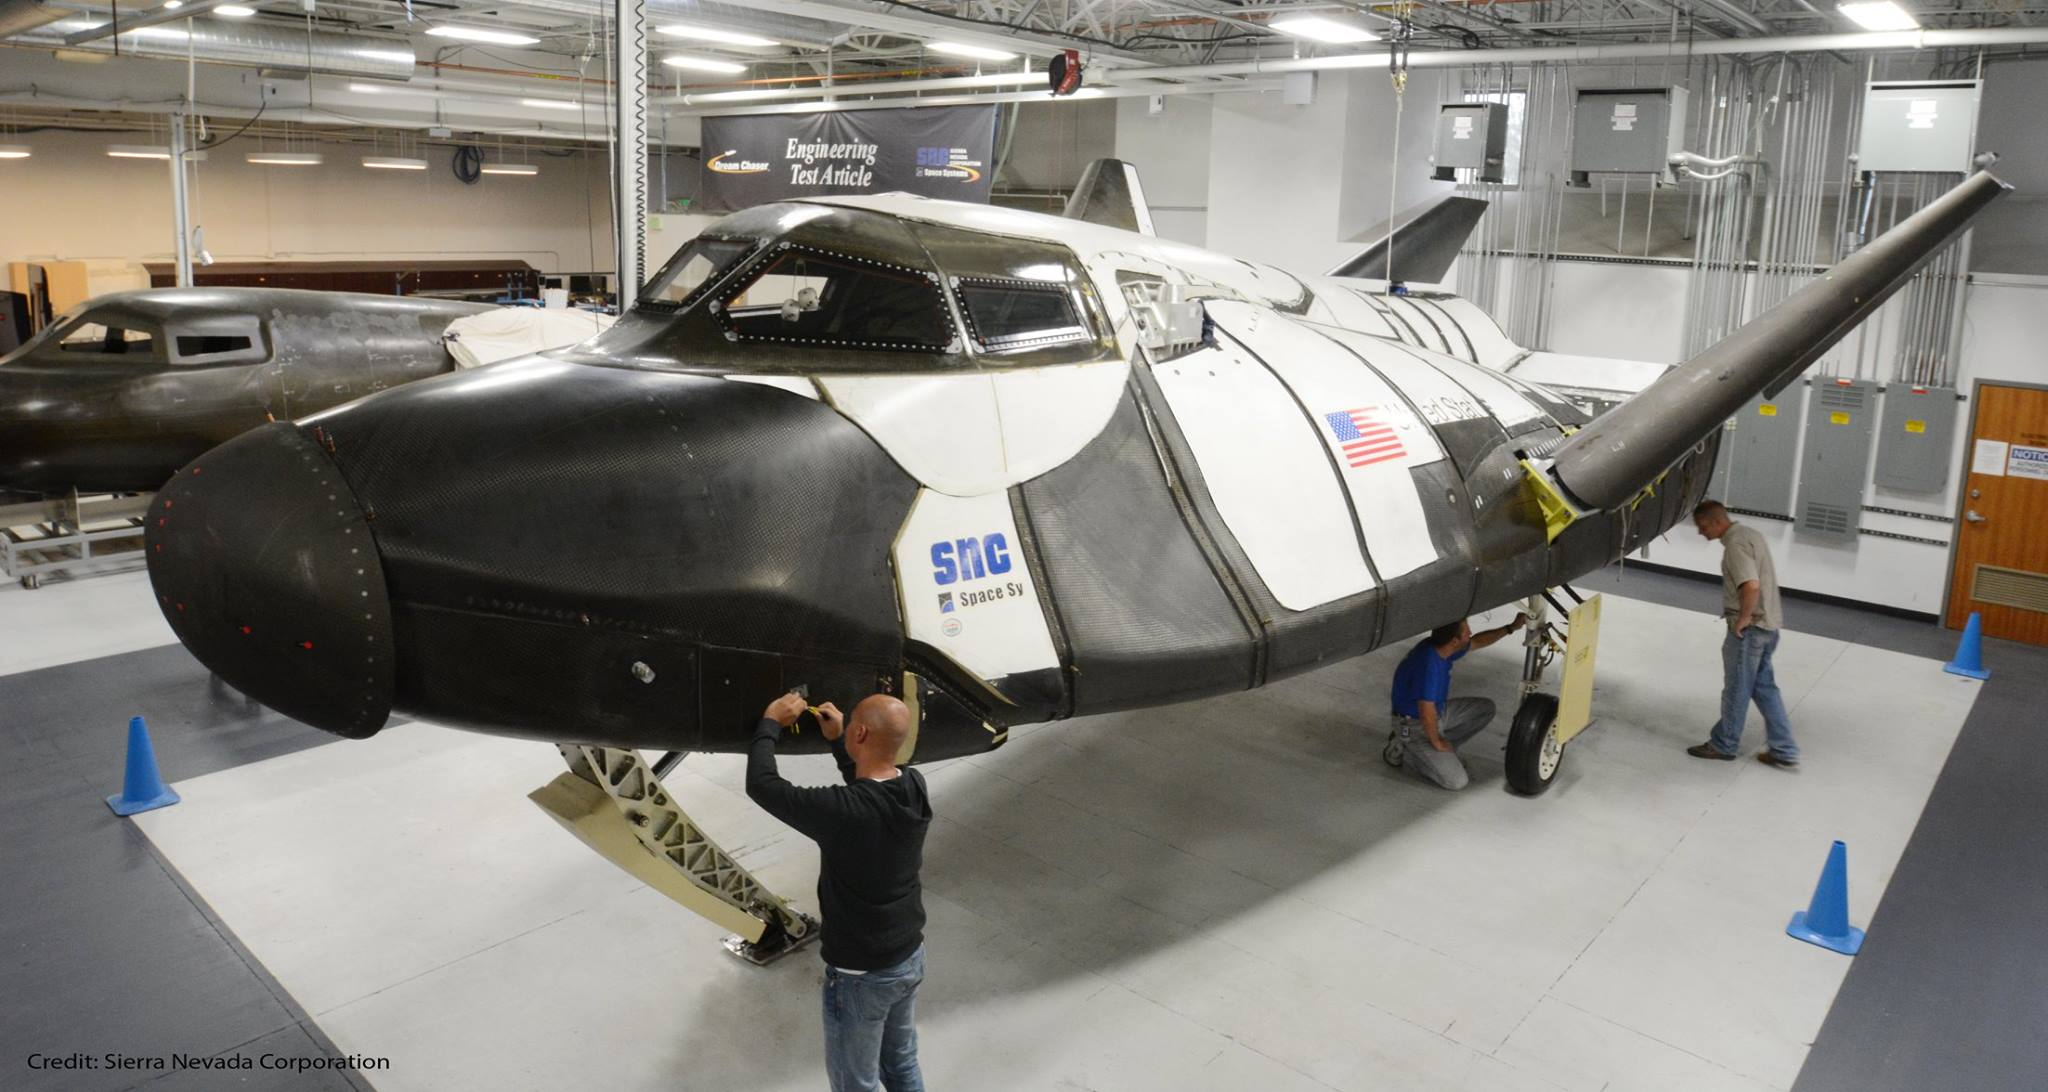 Sierra Nevada Corp. technicians prepare the Dream Chaser engineering test article for another round of atmospheric flight tests. Credit: Sierra Nevada